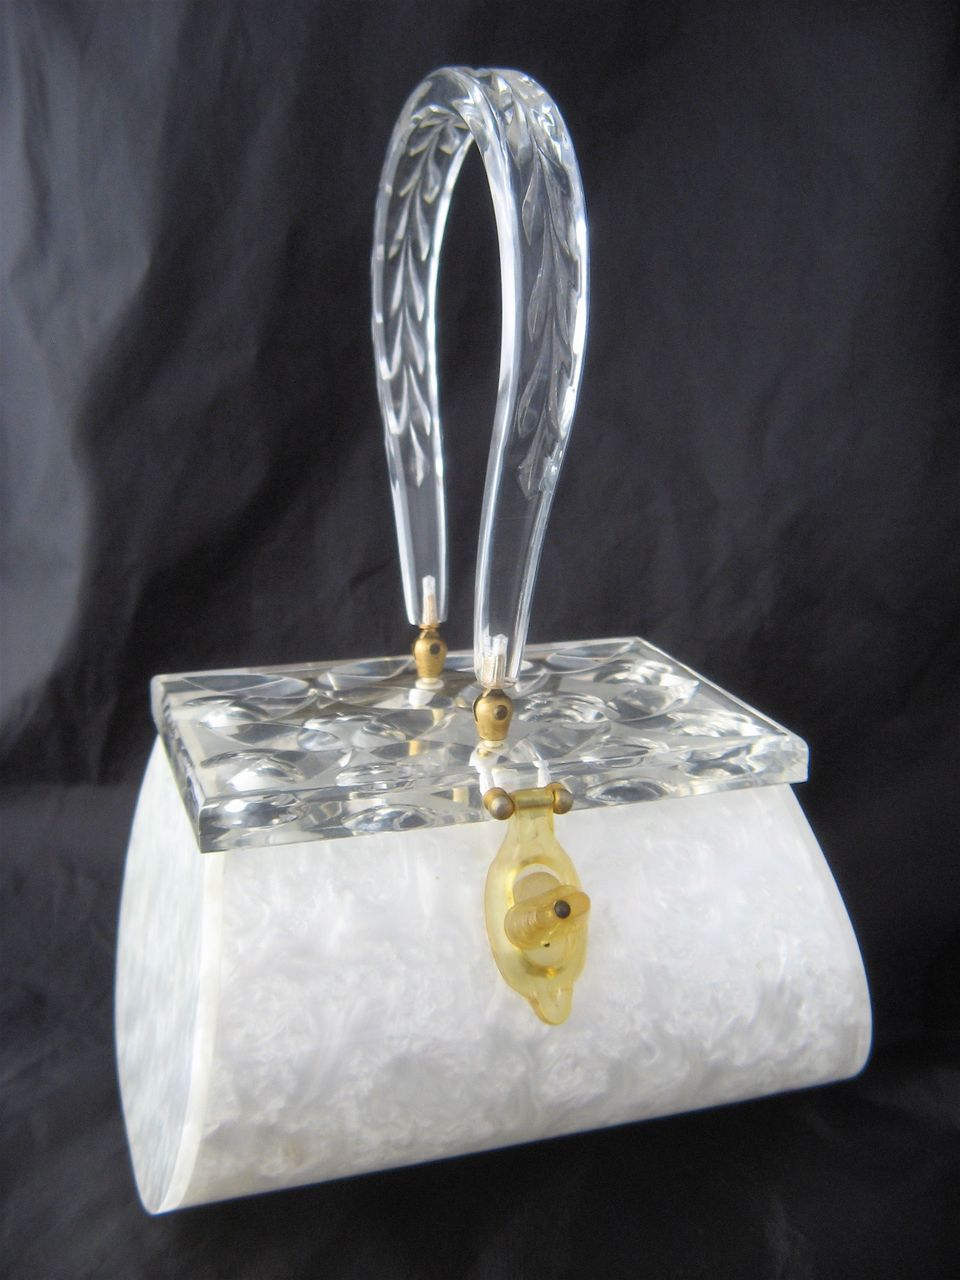 to wear - Wear you Would Lucite accessories? video